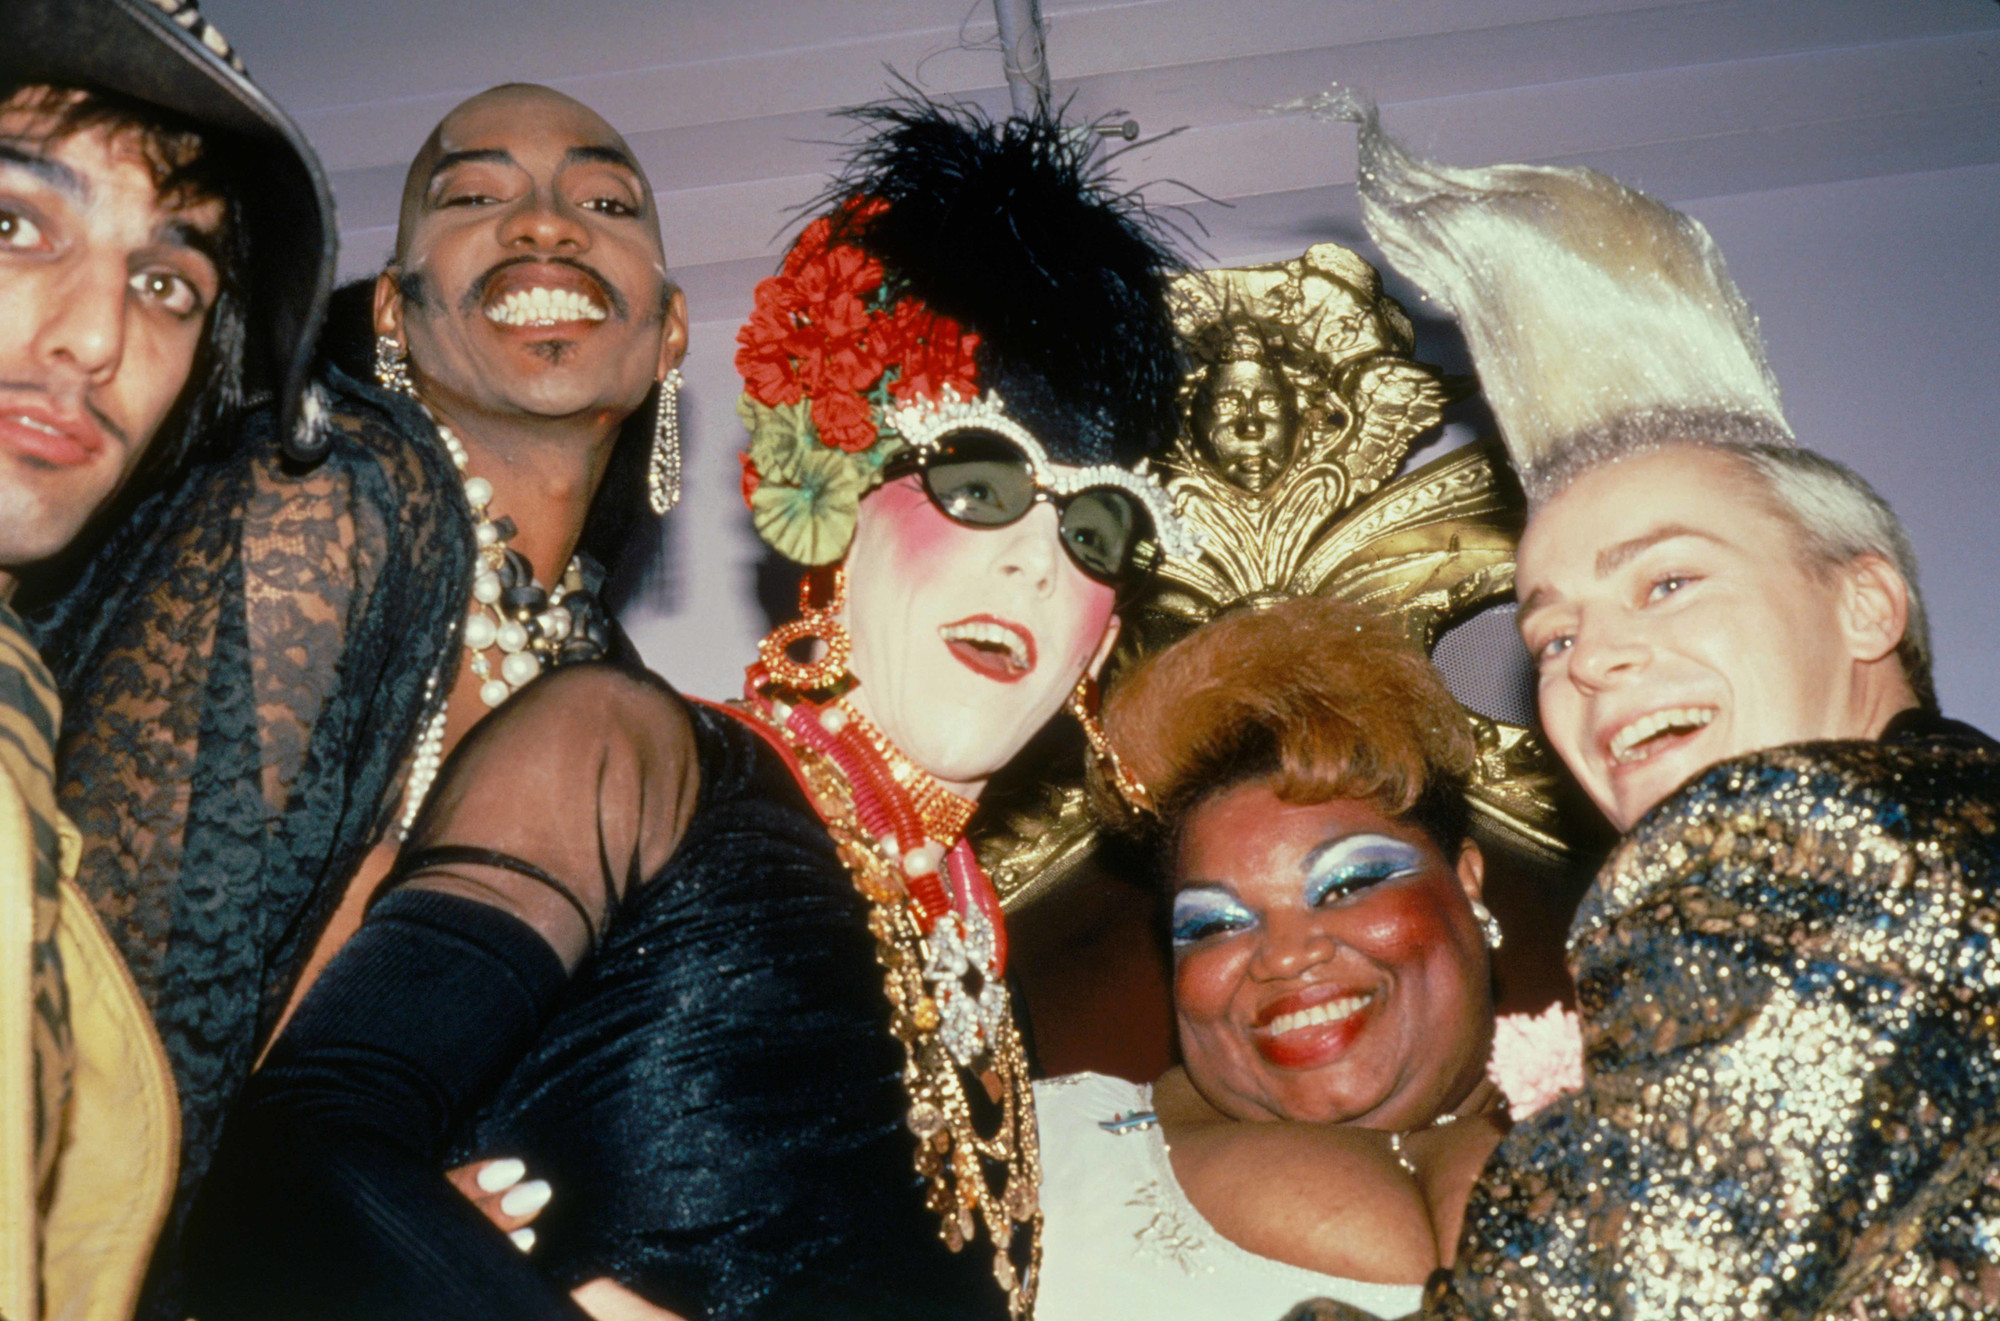 Tabboo!, Gerard Little, unknown performer, Jean Hill, and John Sex, 1983. Photo: Ande Whyland. Courtesy the artist